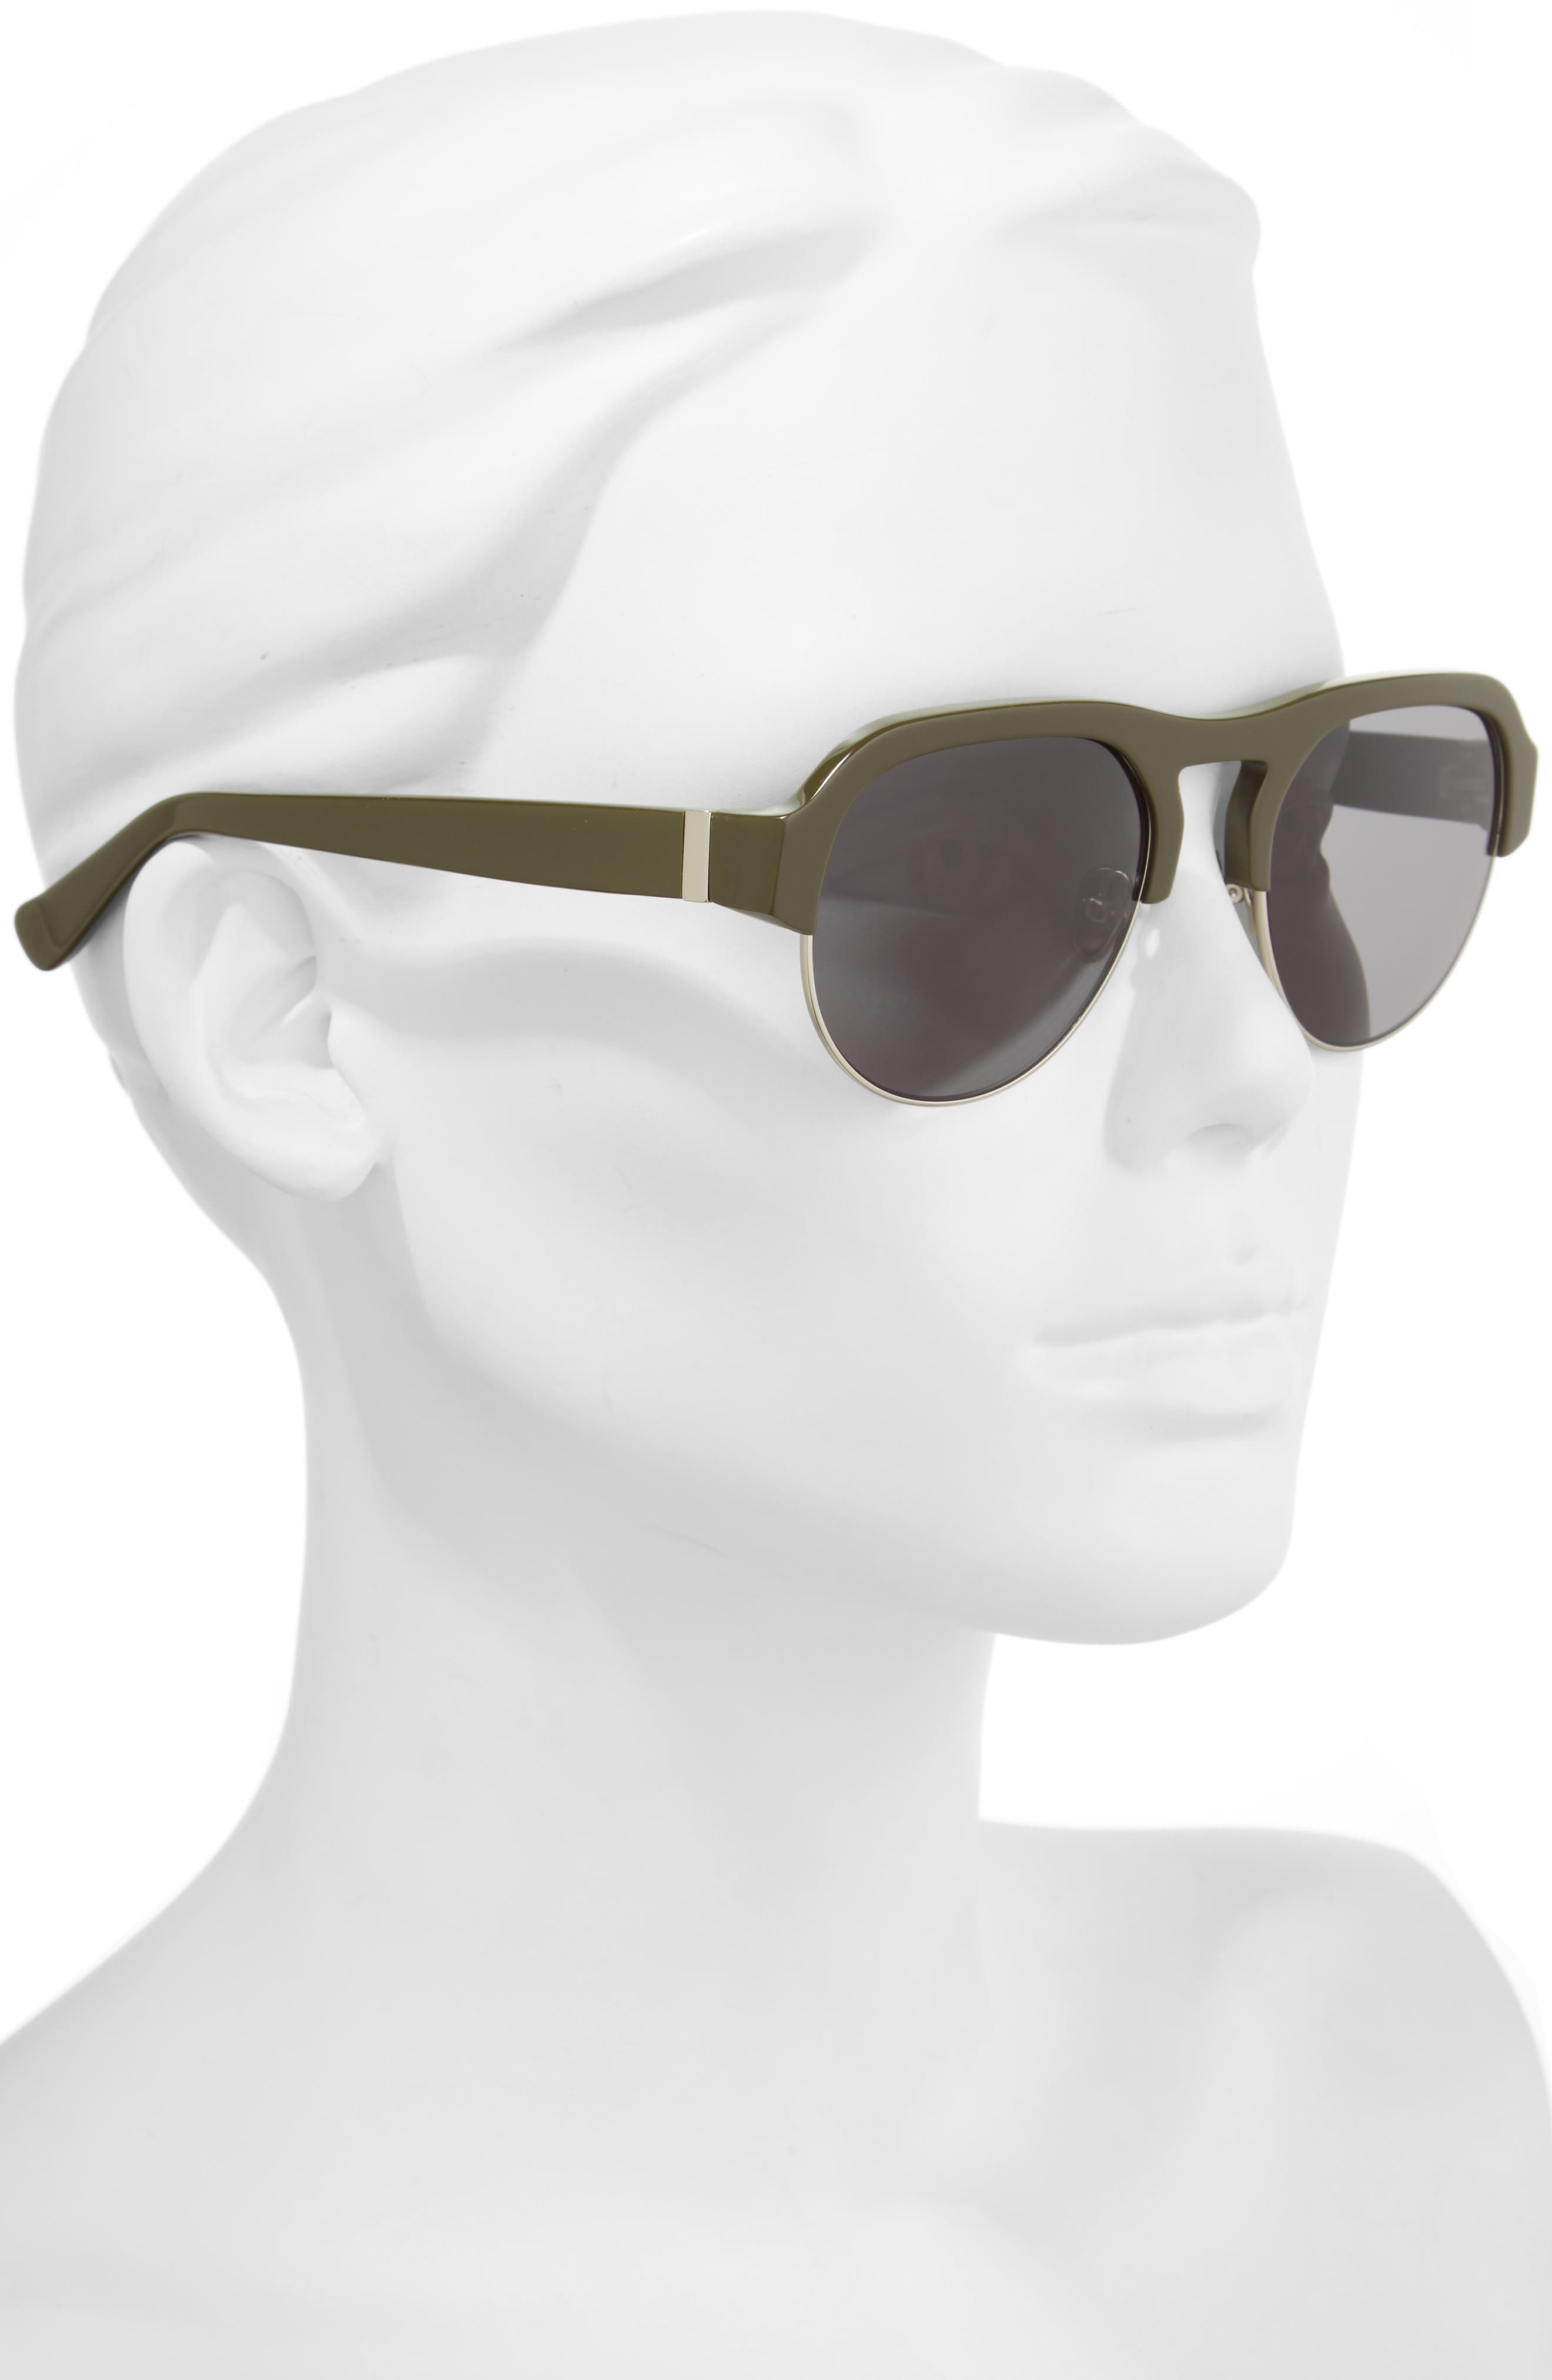 Nomad 52mm Sunglasses,                             Alternate thumbnail 2, color,                             OLIVE/ SILVER